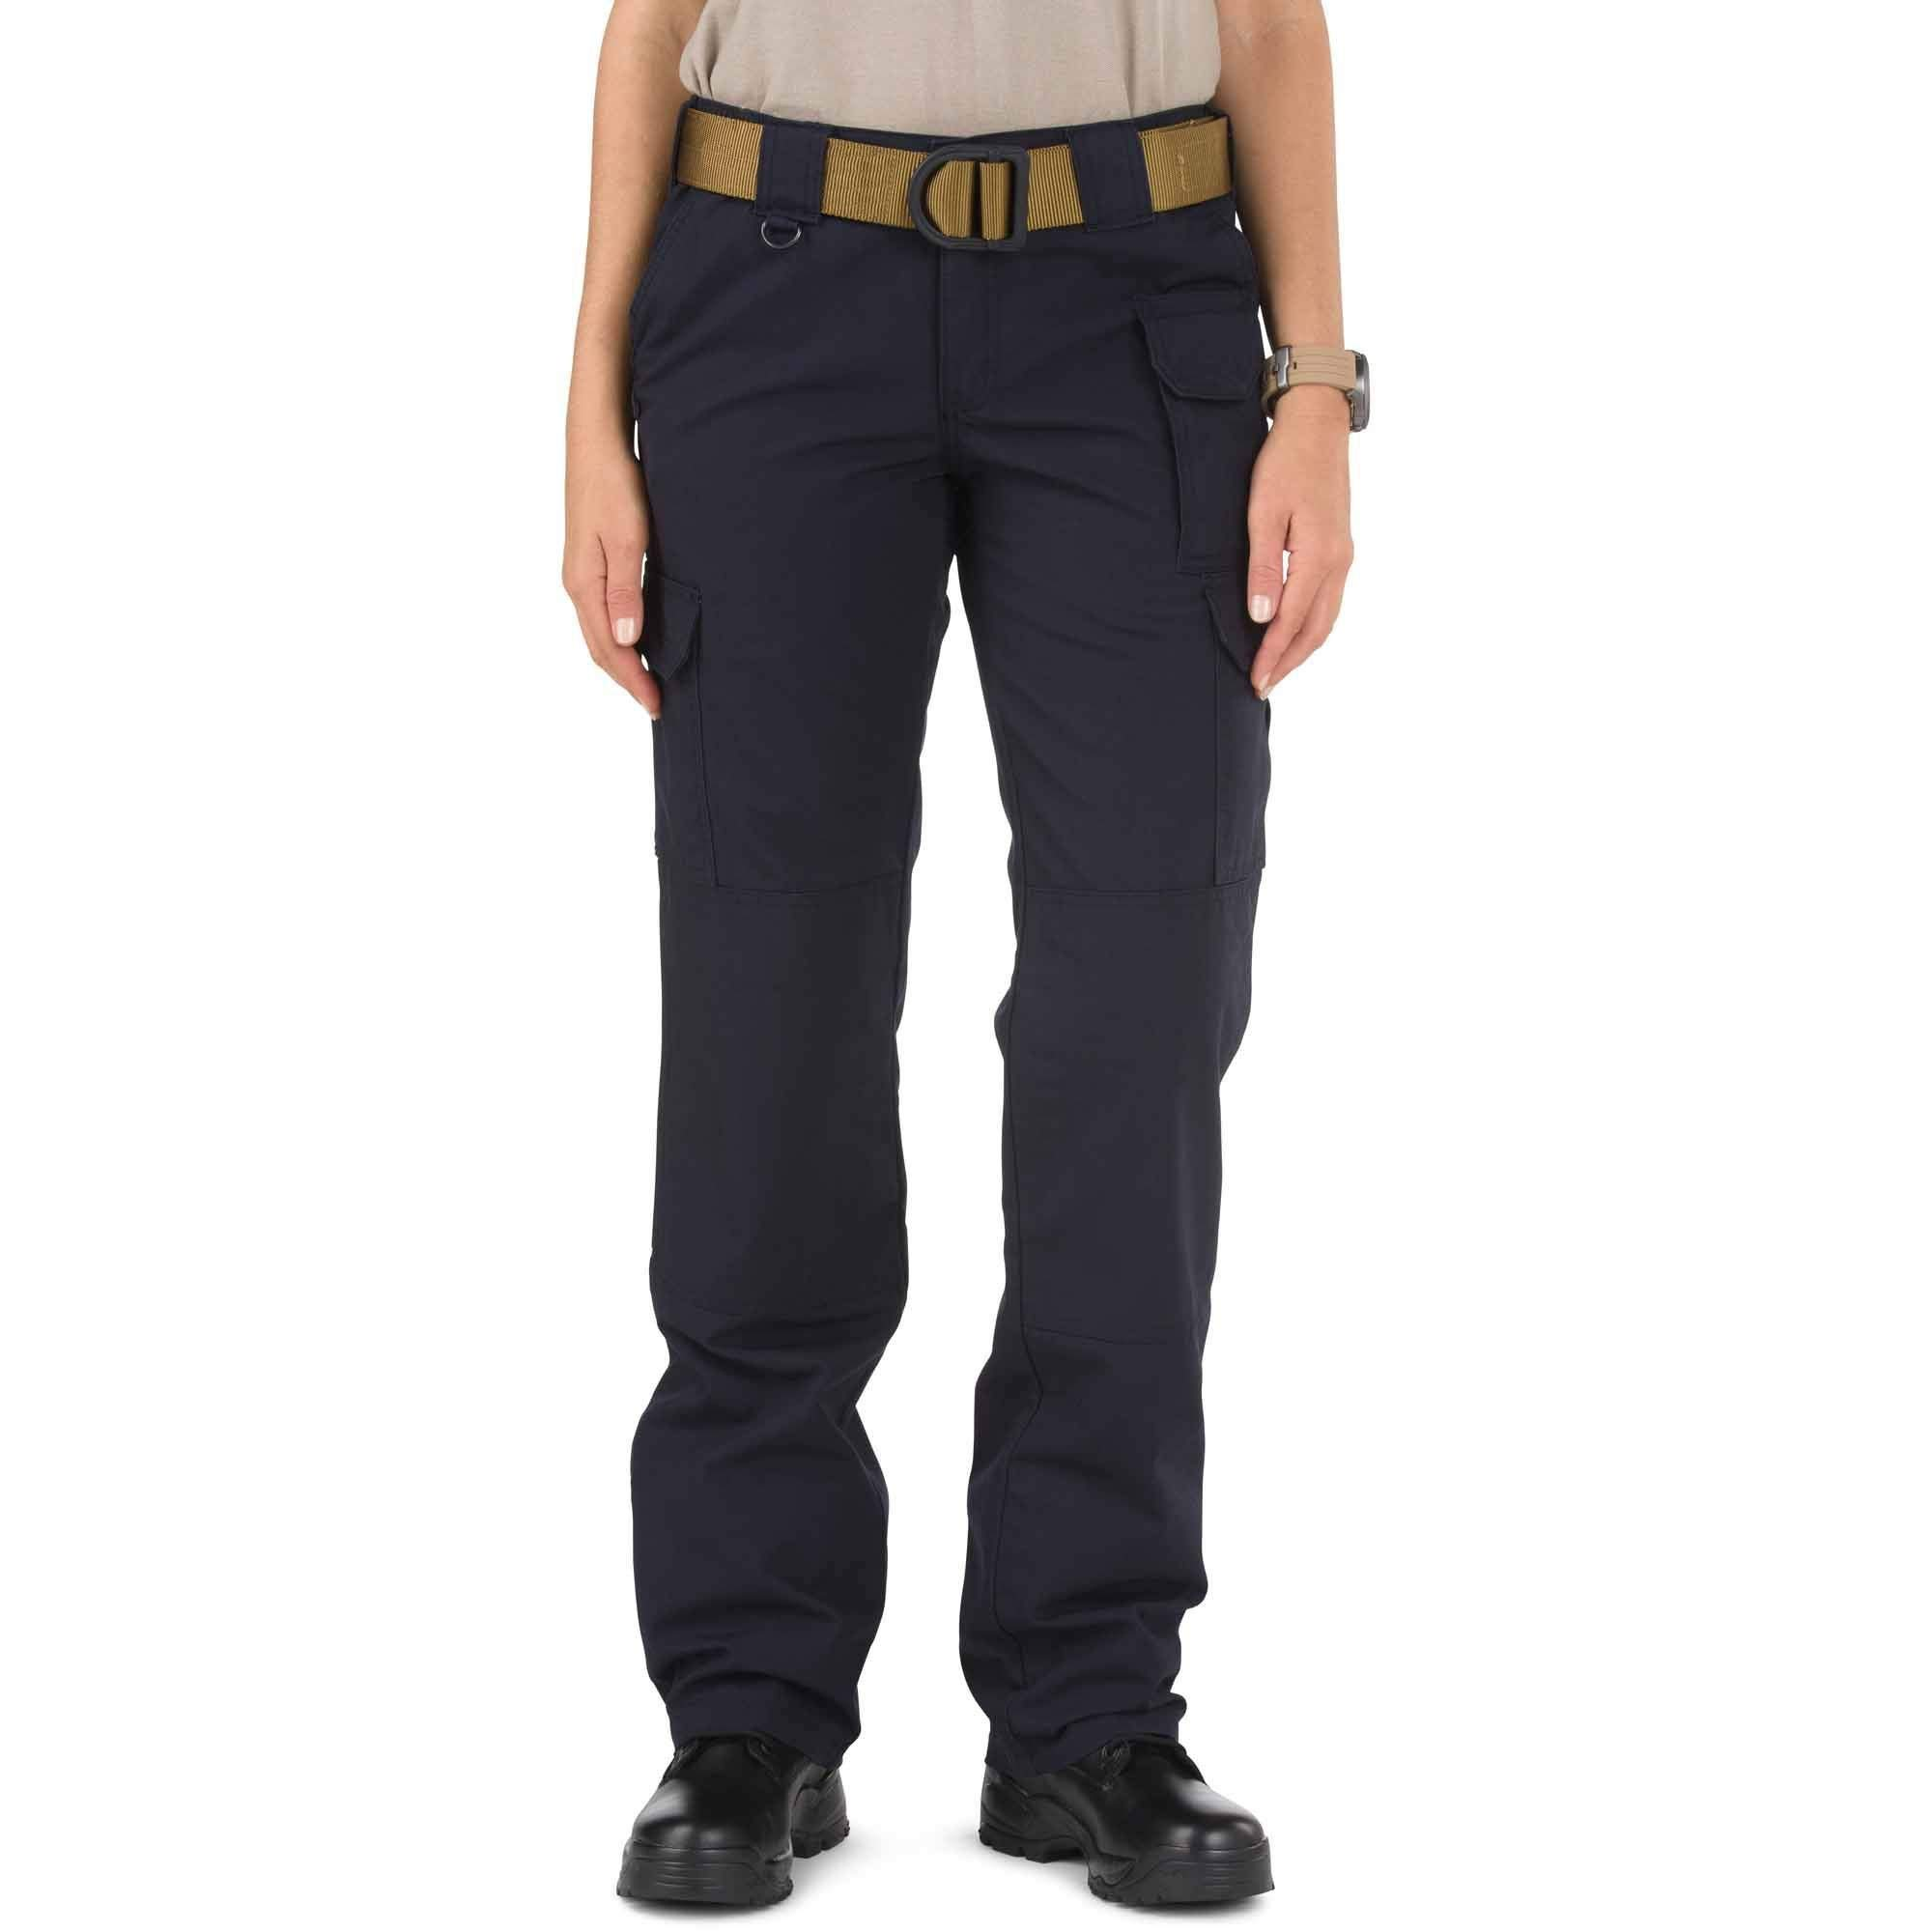 5.11 Tactical Women's Tactical Cargo Pants Cotton Canvas Fabric Fire Resistant Style 64358TAA